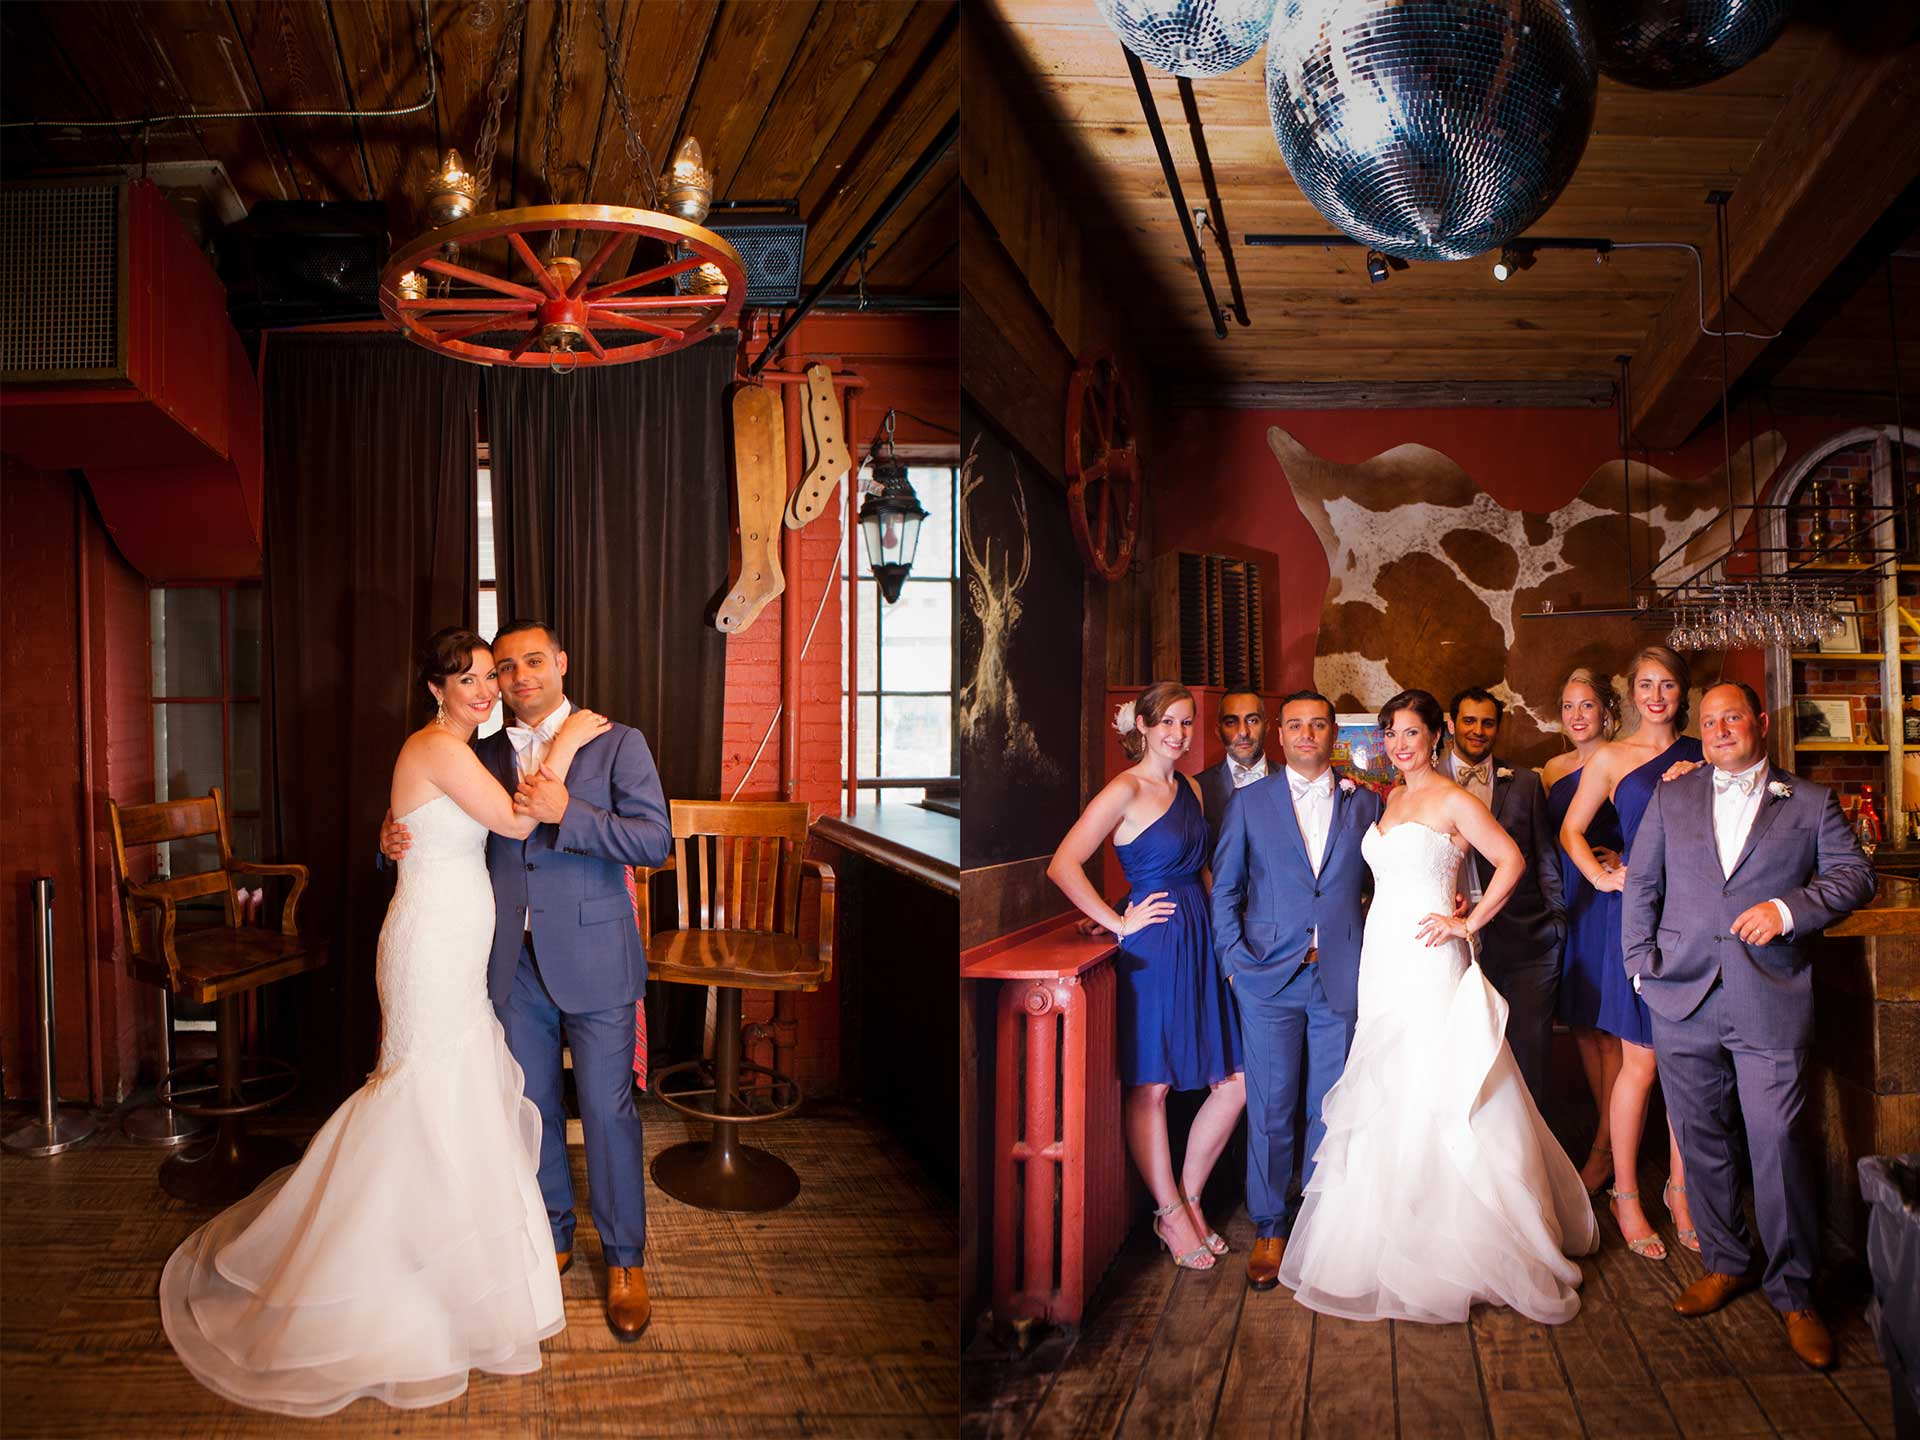 Toronto Wedding Venue Rustic Cabin for Wedding Photography